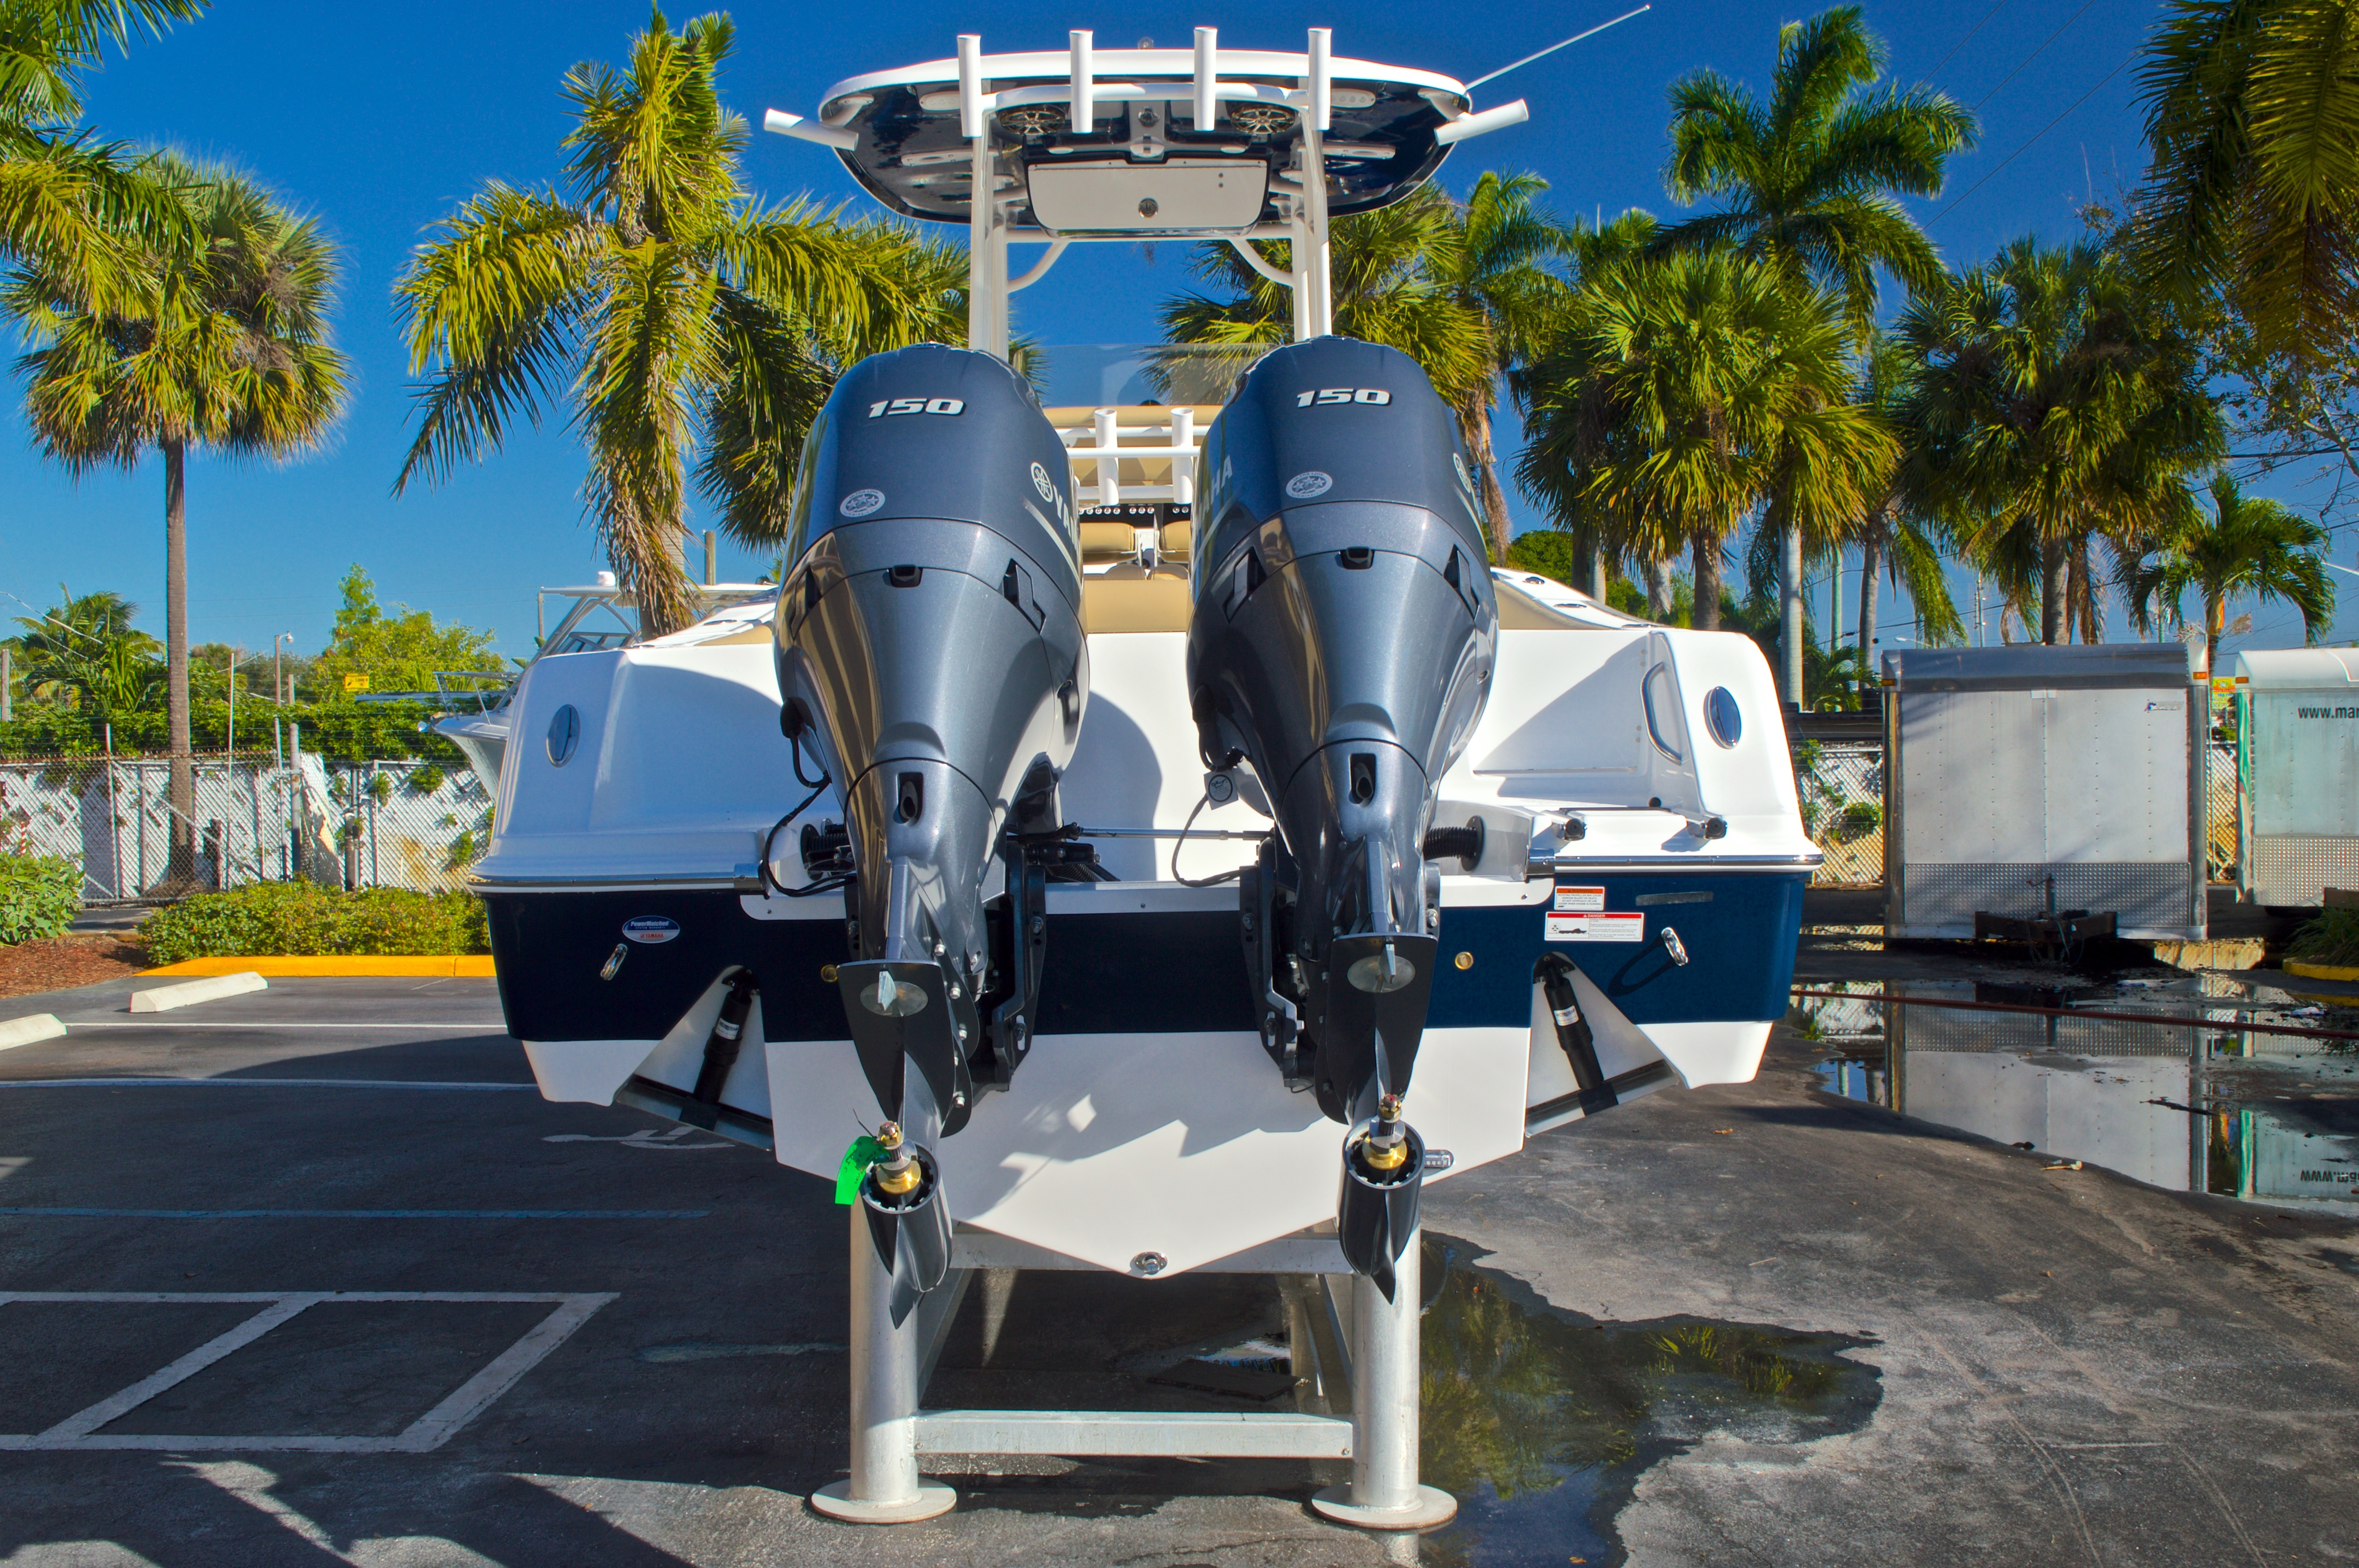 Thumbnail 14 for New 2016 Sportsman Heritage 251 Center Console boat for sale in West Palm Beach, FL